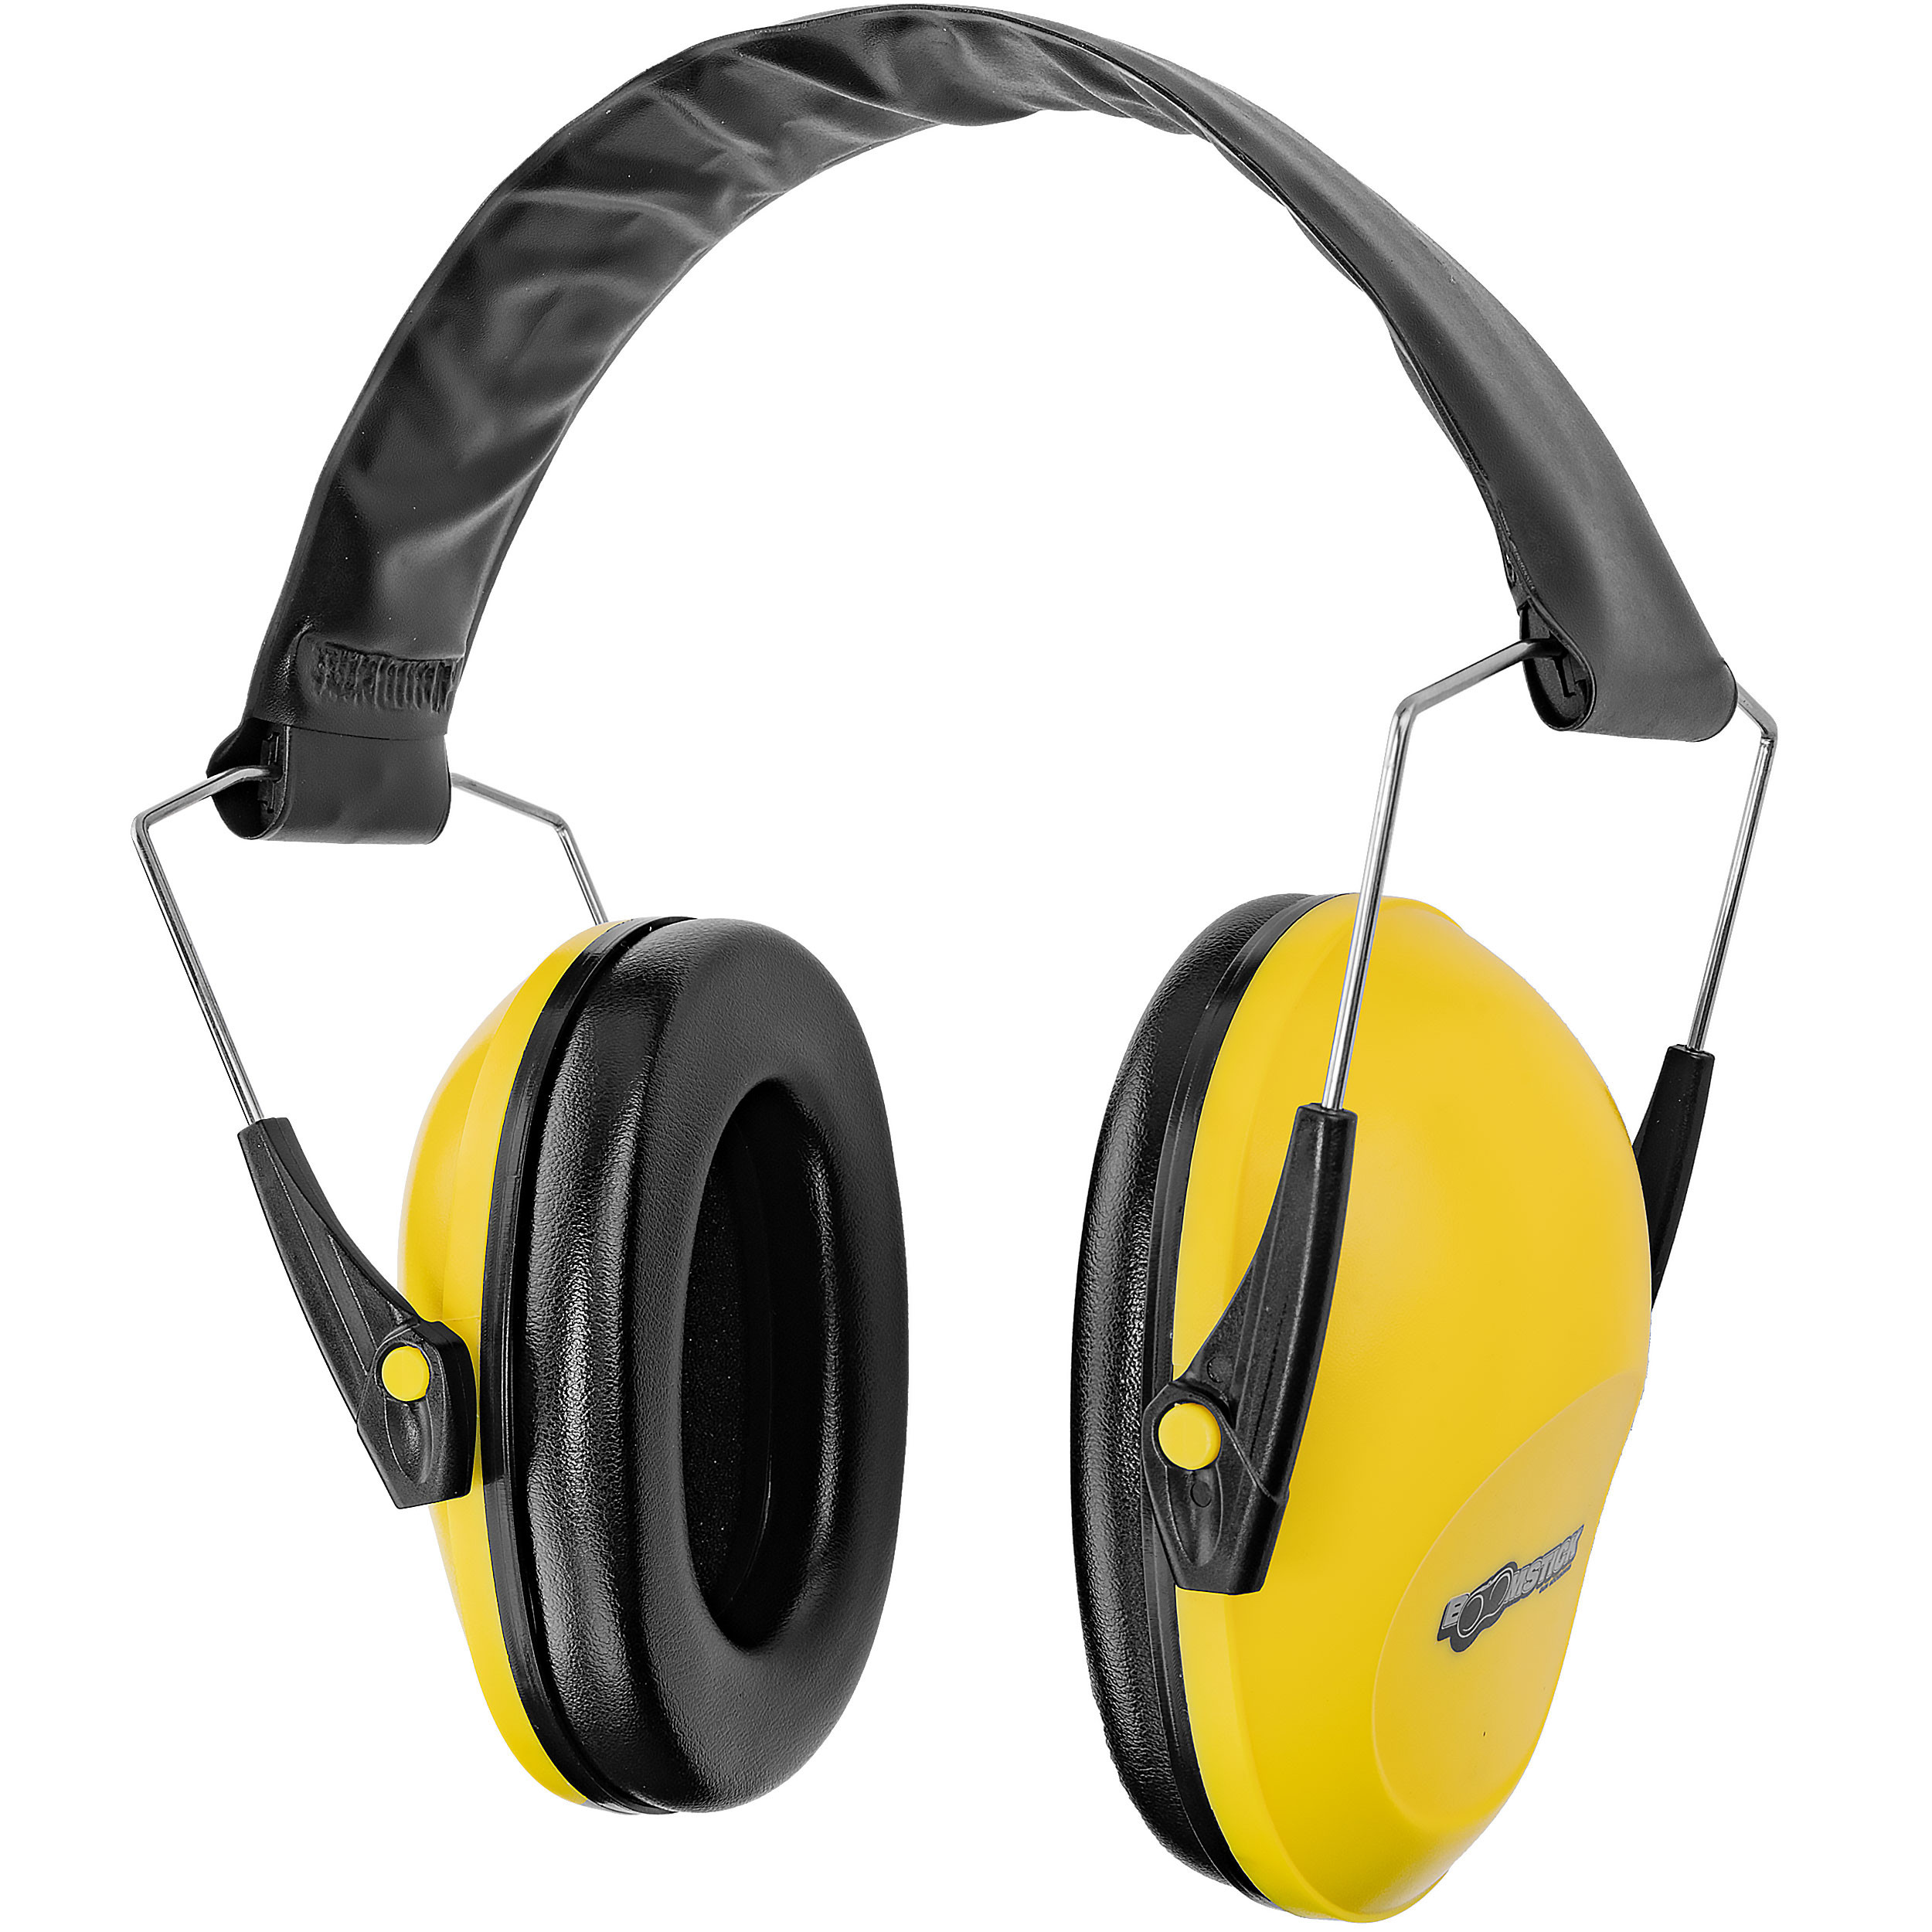 Boomstick Gun Accessories Folding Over Ear Earmuff Noise Reduction Safety Hearing Protection